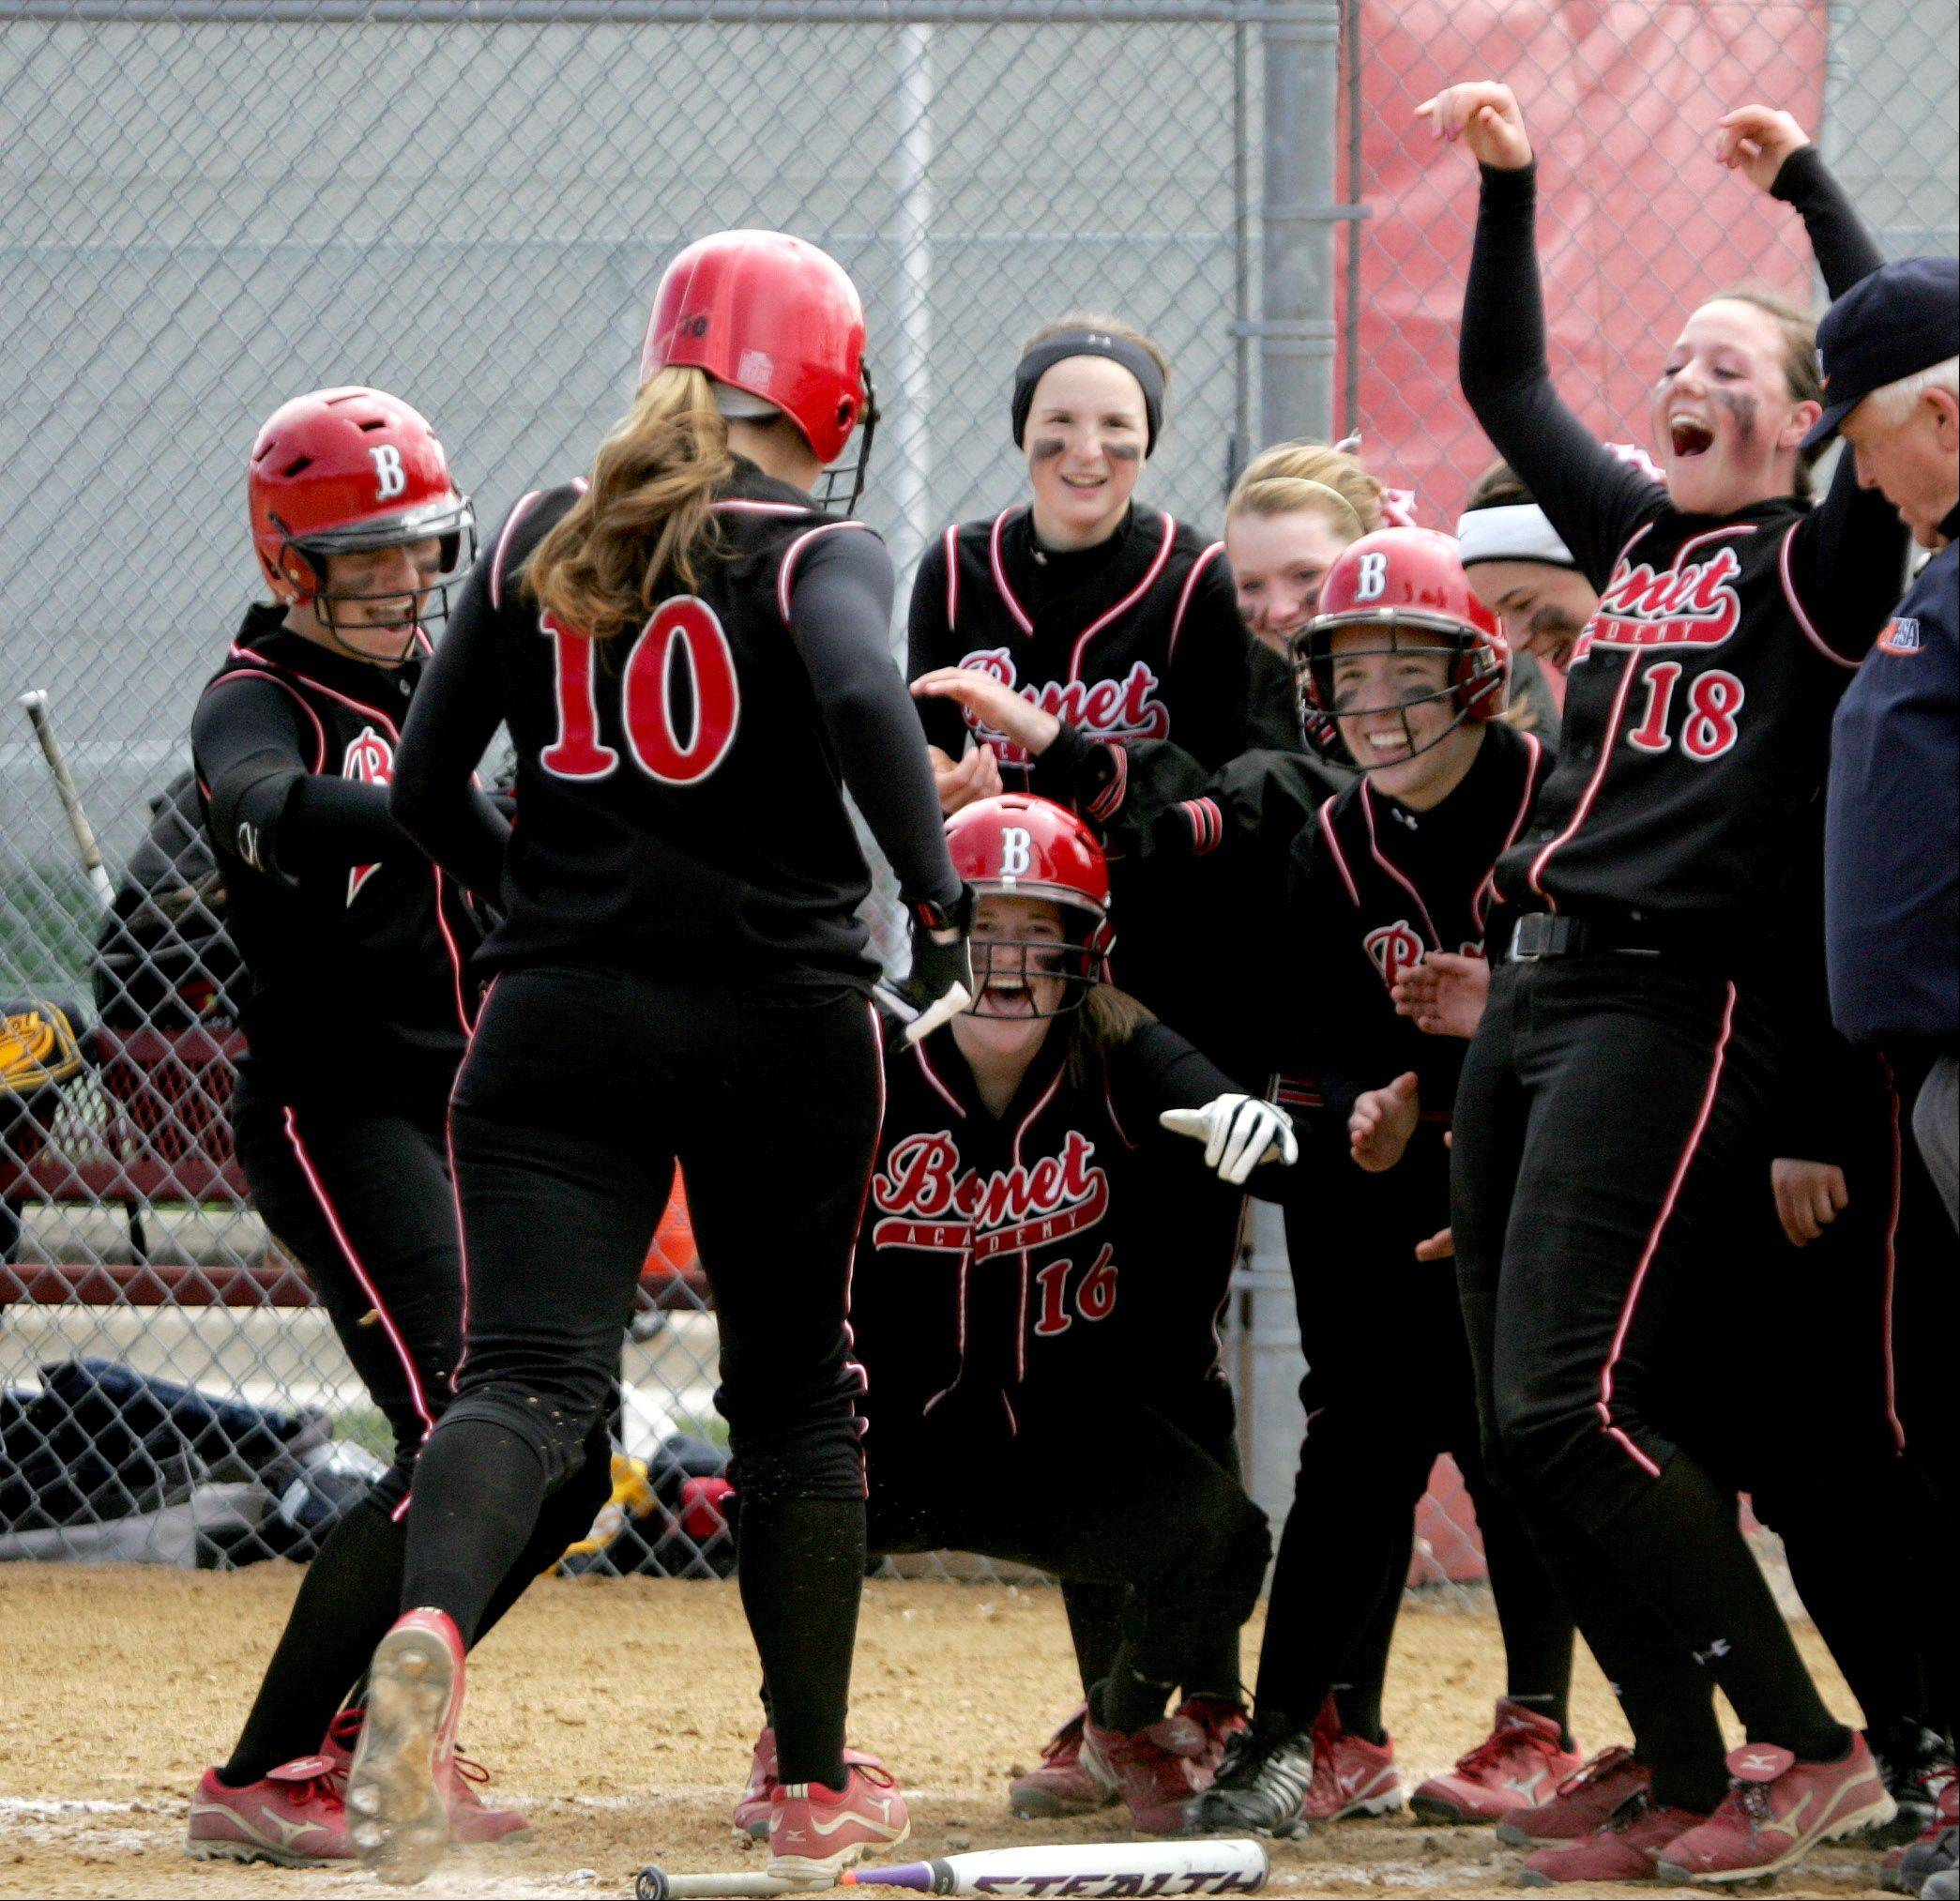 Benet Academy's Kendall Duffy, left, is greeted by her teammates after hitting a home run against Neuqua Valley on Monday in Lisle.